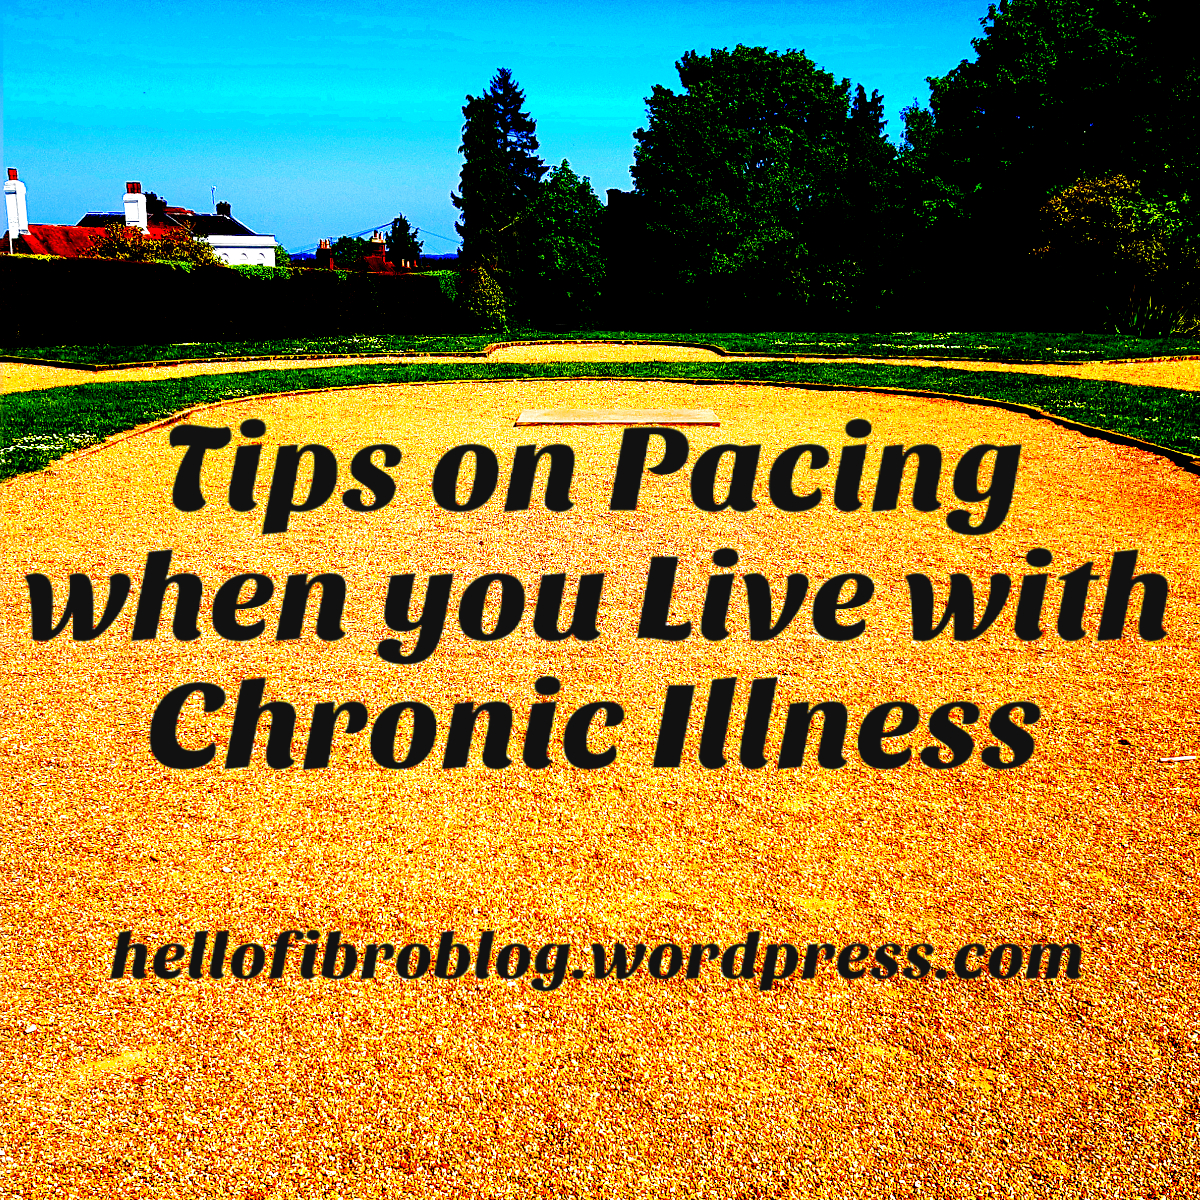 Tips on Pacing when you Live with Chronic Illness